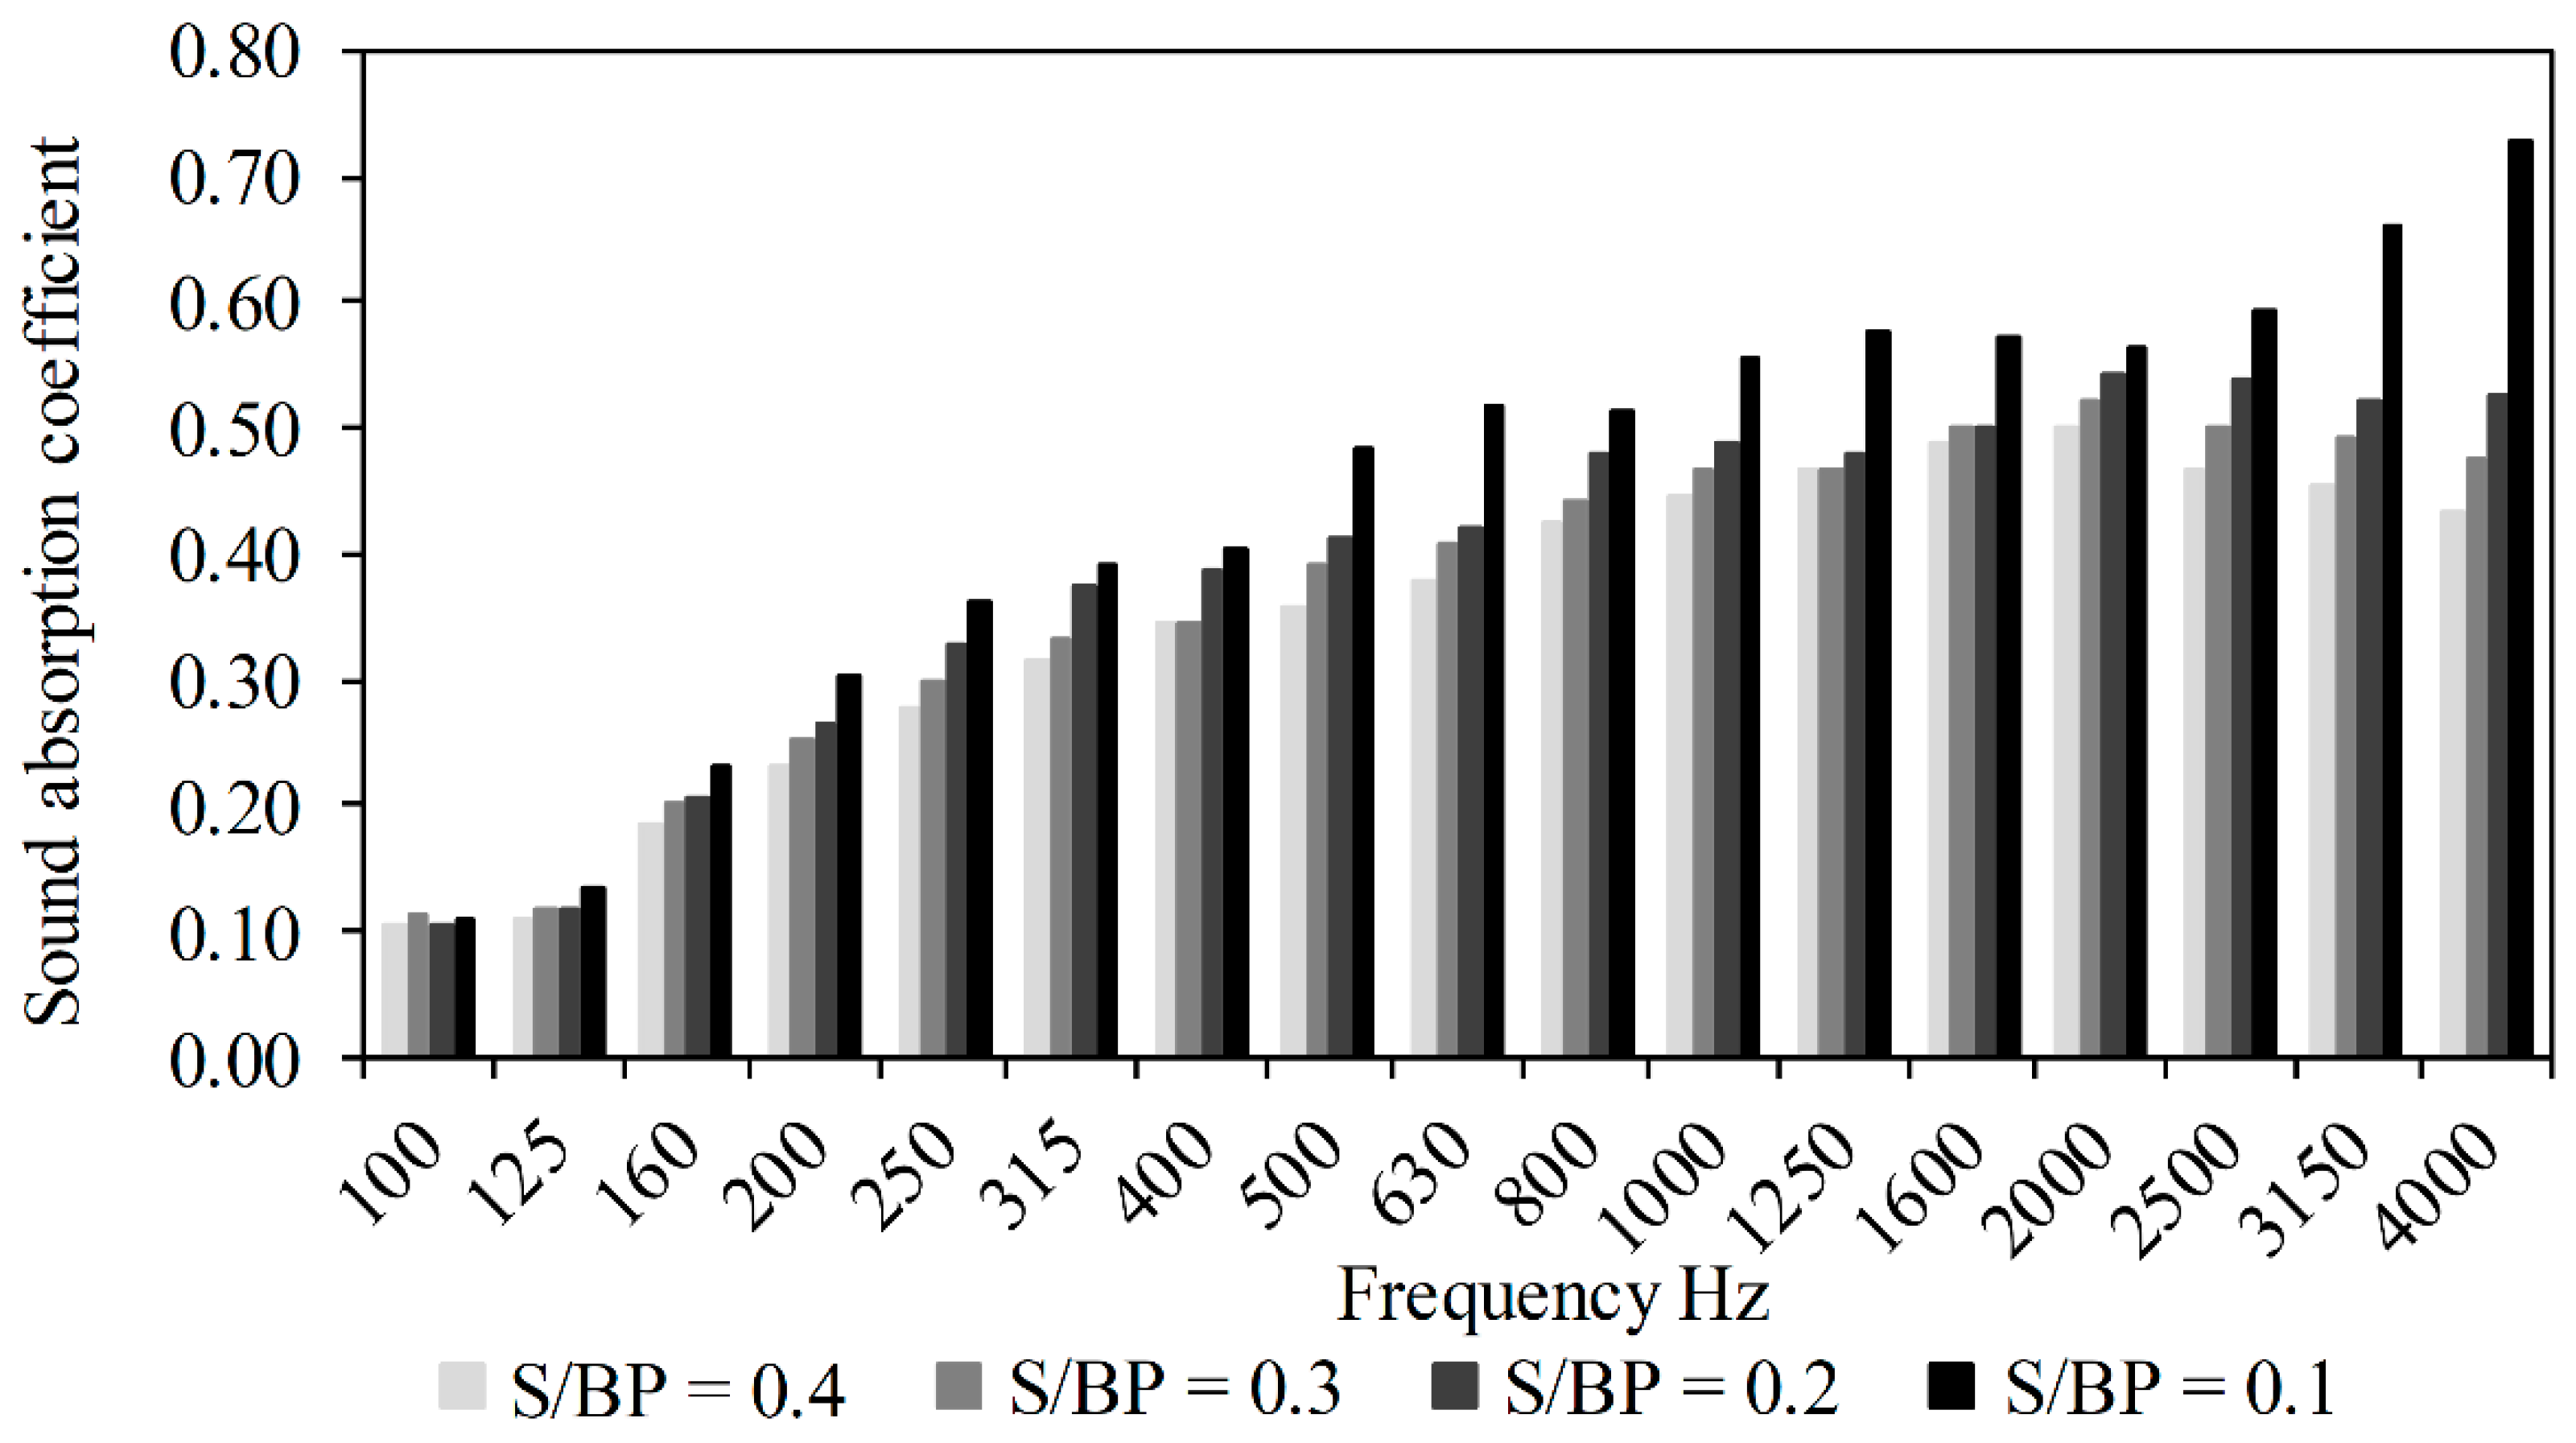 Materials   Free Full-Text   Hygrothermal and Acoustical Performance